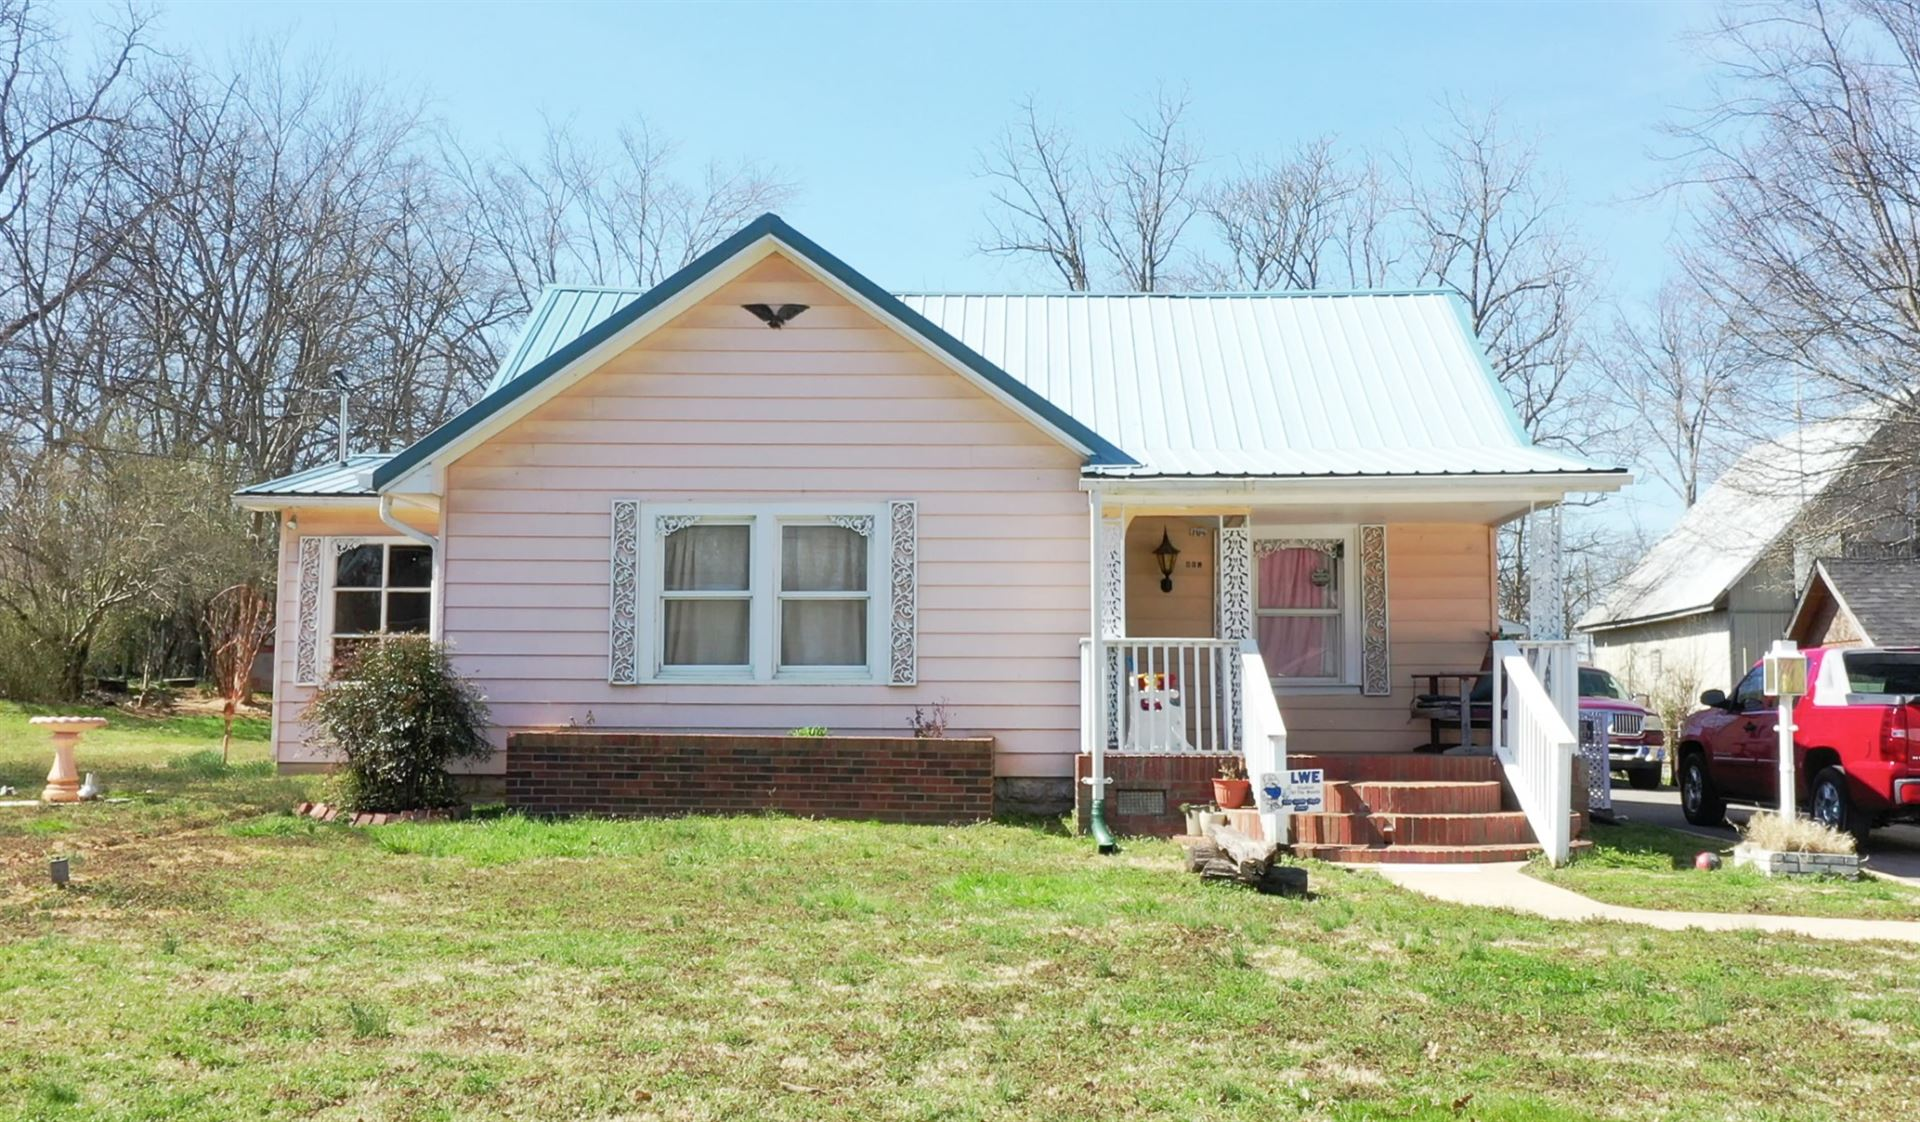 104 Burt St, Shelbyville, TN 37160 - MLS#: 2233408